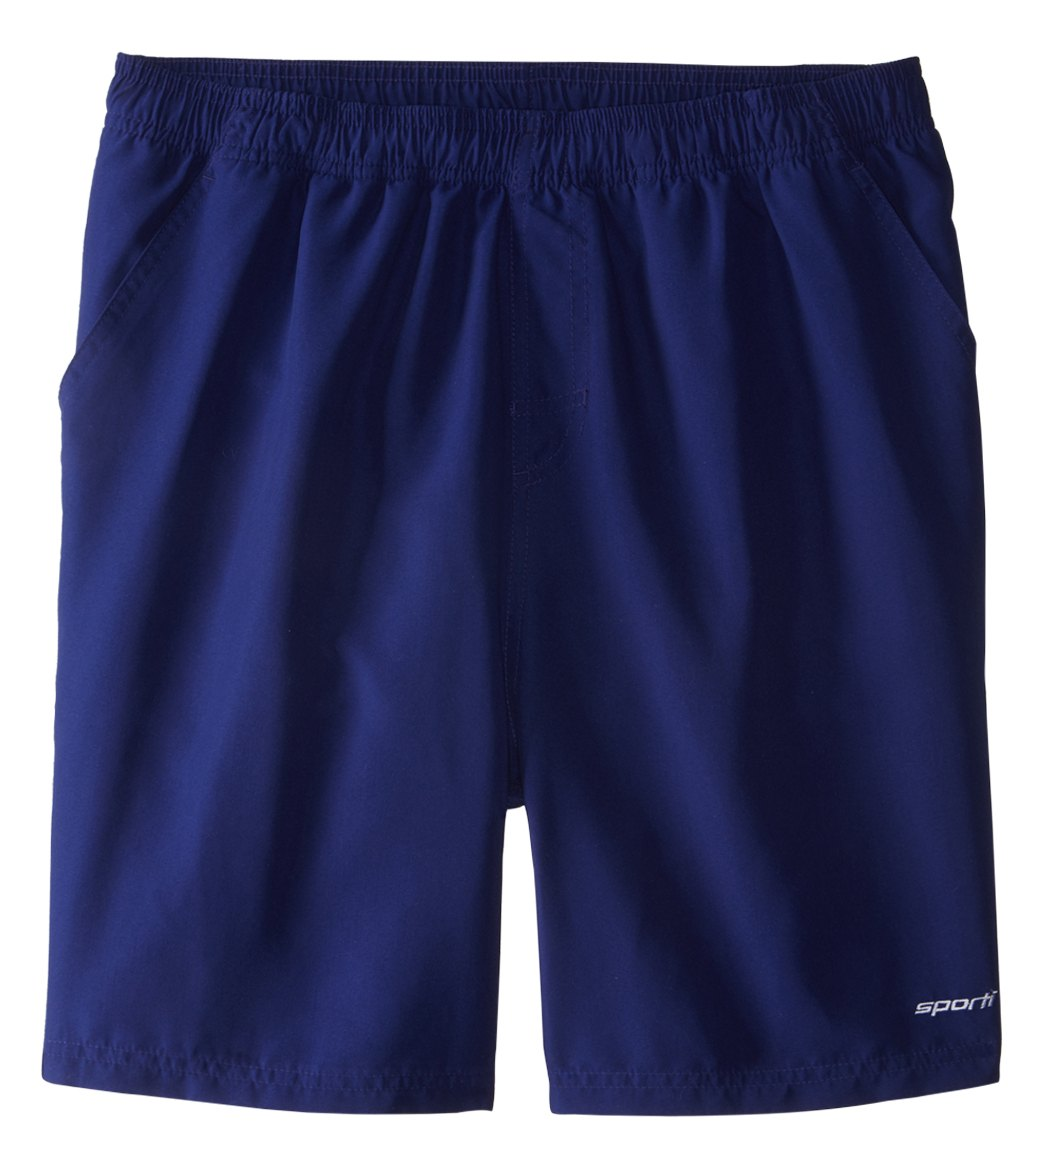 swim trunks sporti menu0027s solid swim trunk at swimoutlet.com CXAESQC